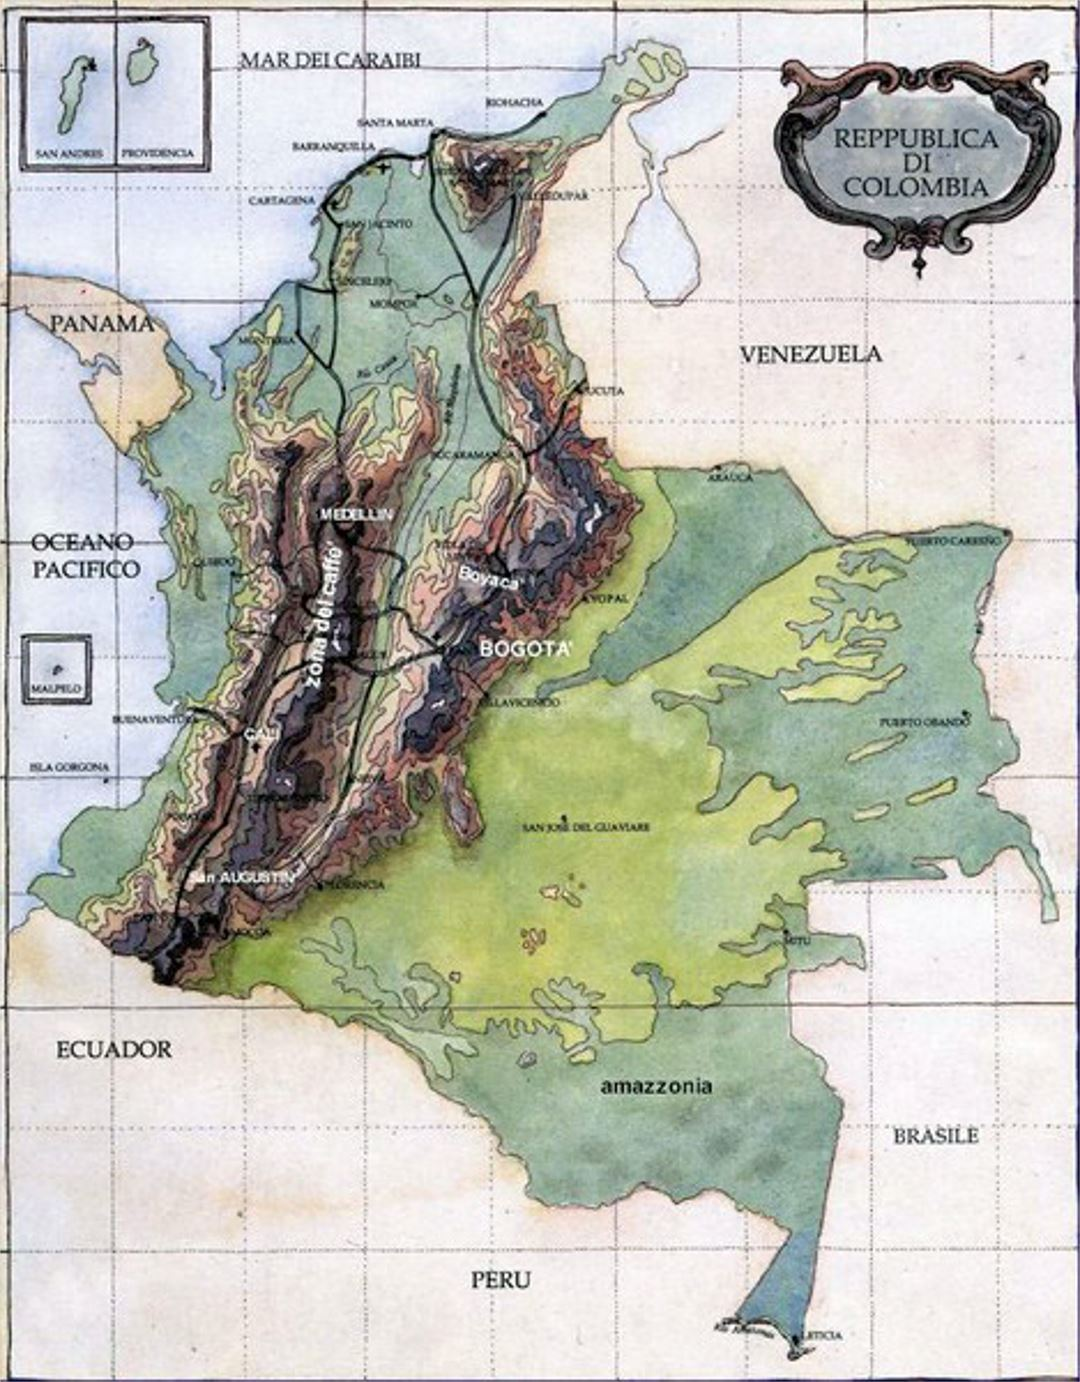 Terrain map of Colombia